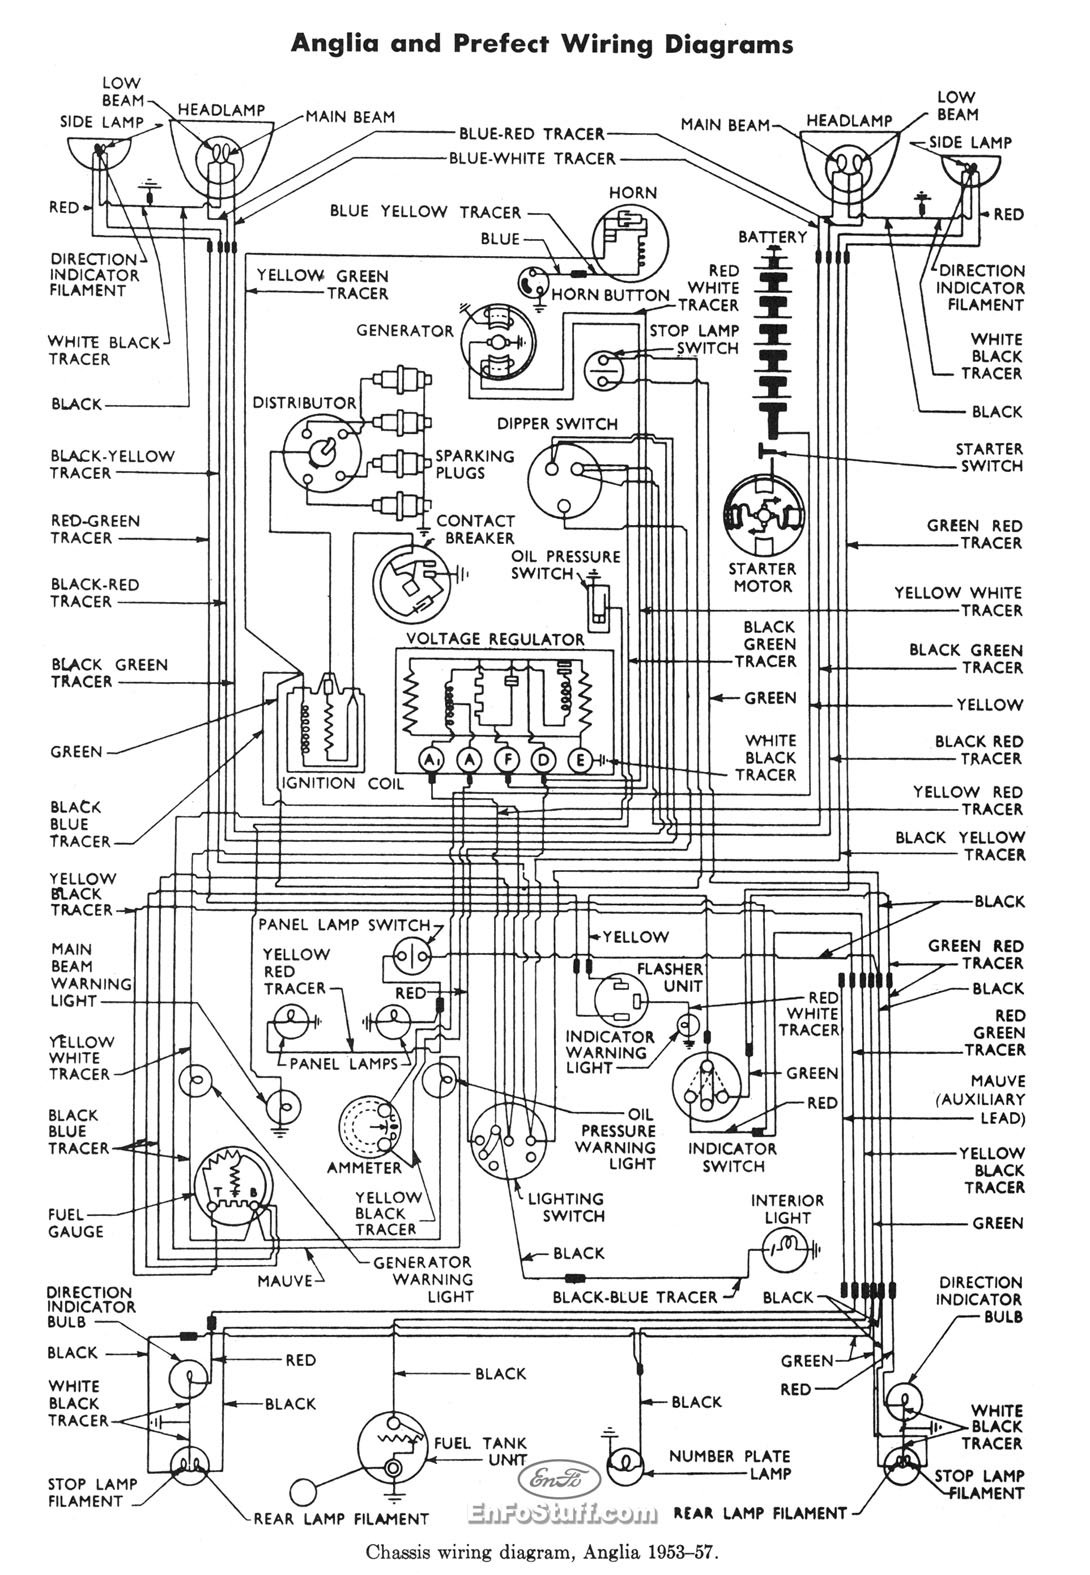 isuzu dmax wiring diagram pdf html with Ford Anglia 1953 57 Wiring Diagram on Hyundai Accent Wiring Diagram Download also Isuzu D Max furthermore 15hwf Need Wiring Diagram 2000 Isuzu Npr further Wiring Diagram Isuzu D Max besides 1996 Izuzu Trooper Electtric Seat Wiring Diagram.